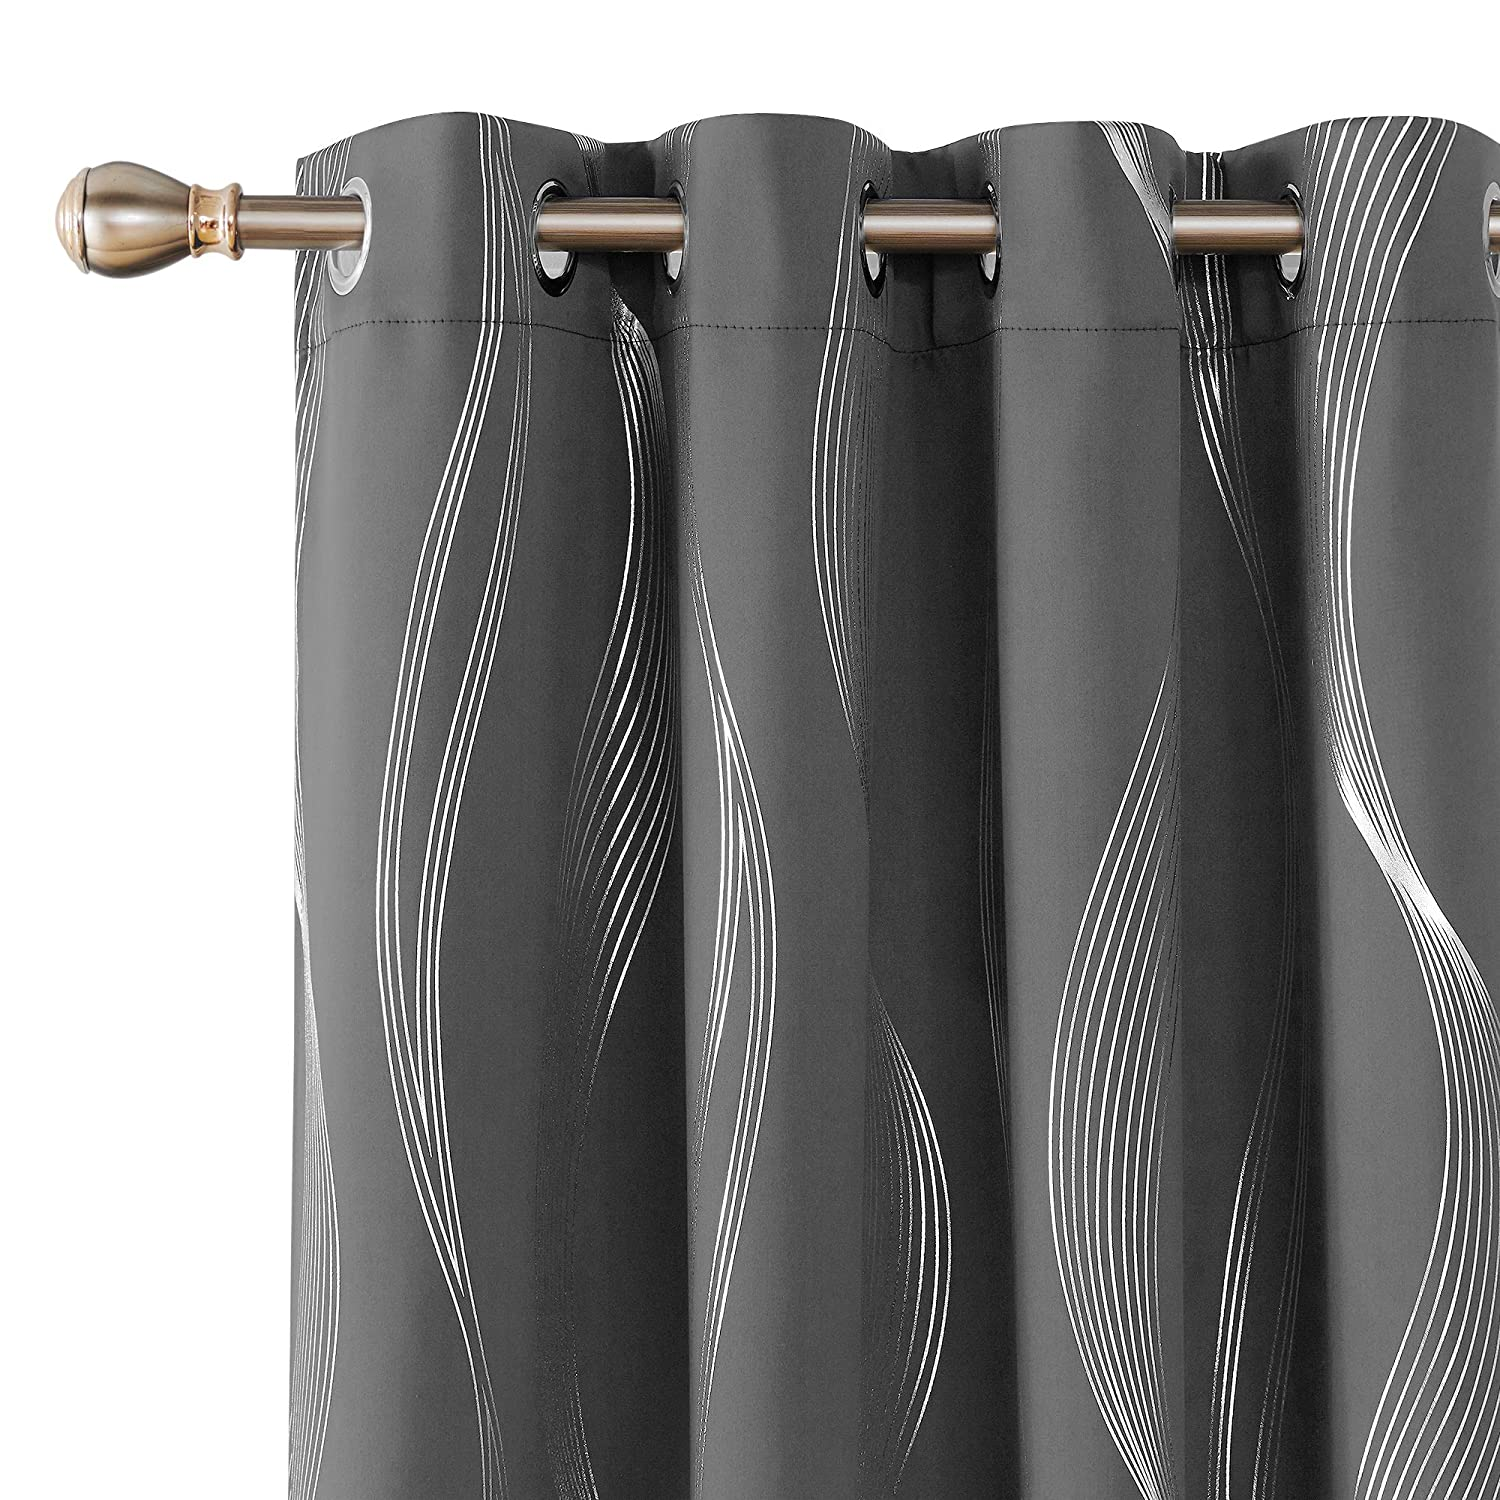 Deconovo Foil Print Wave Design Blackout Curtains Grommet Top Window Curtain for Kids Room 2 Curtain Panels 52 by 63 Inch Dark Grey